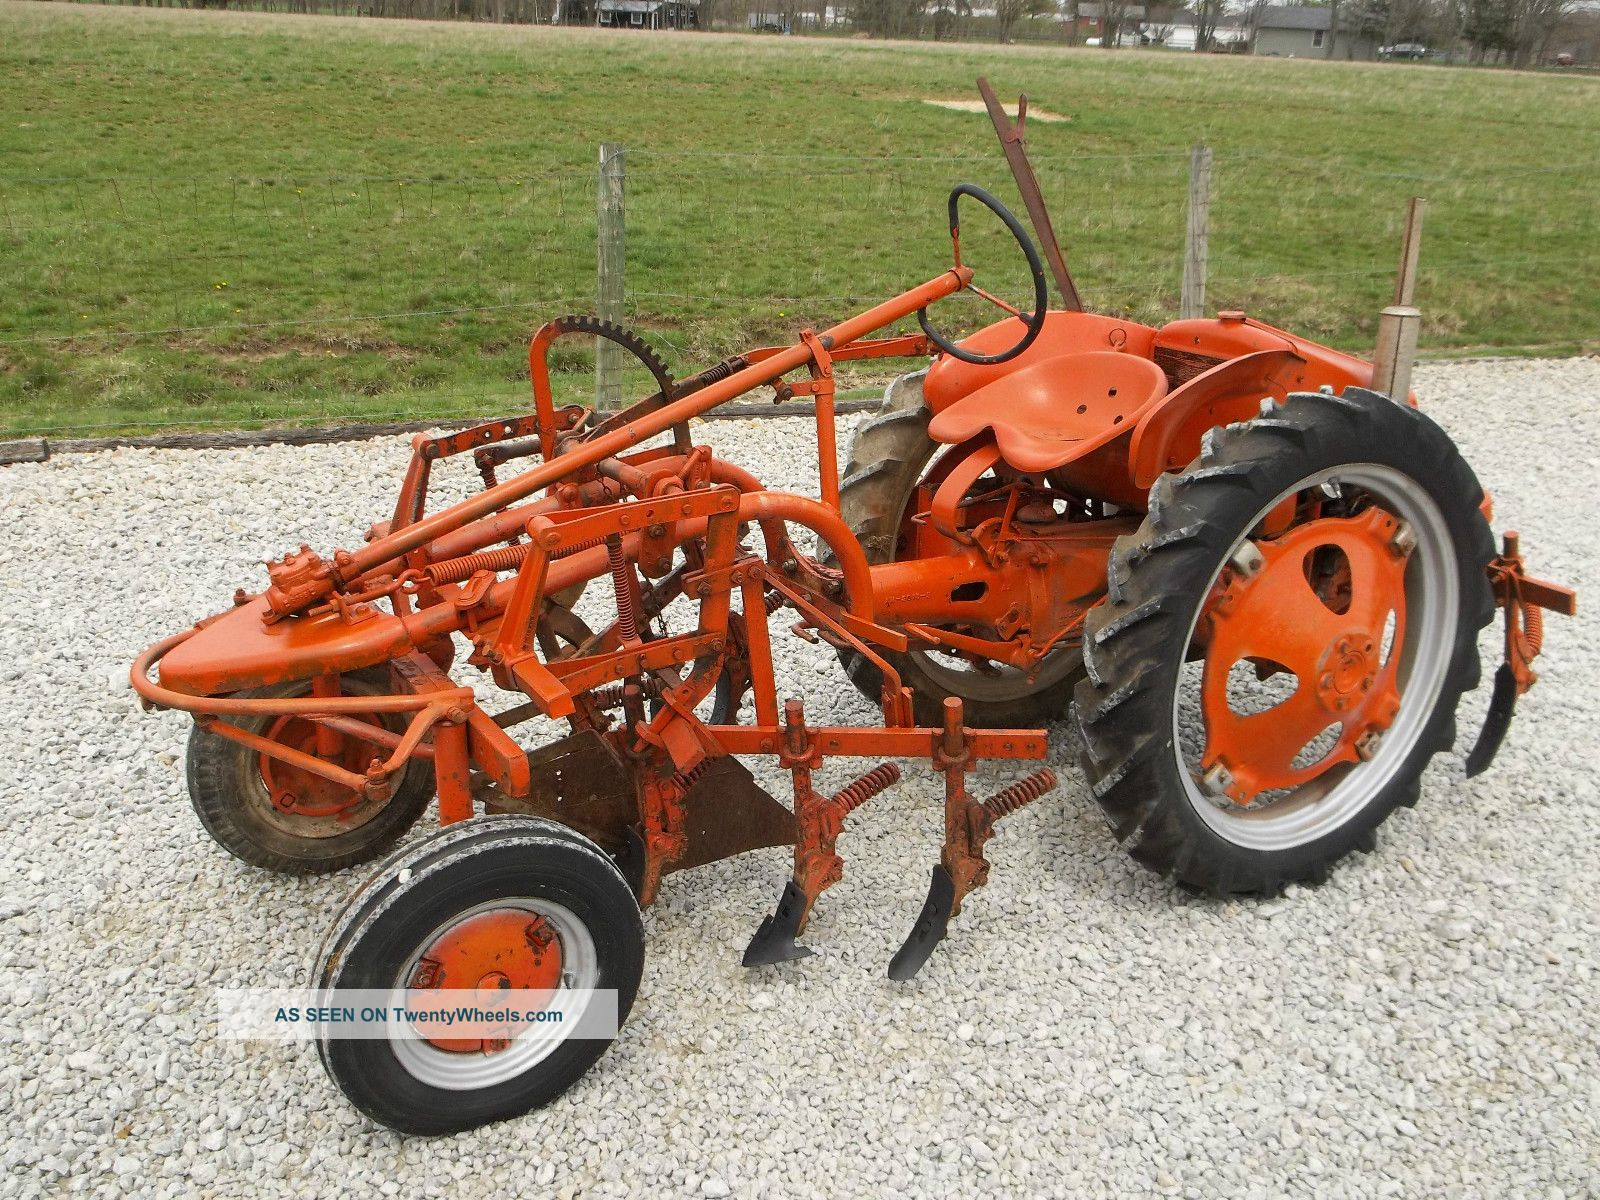 Astounding Allis Chalmers D17 Tractor Wiring Diagram Online Wiring Diagram Wiring Cloud Oideiuggs Outletorg